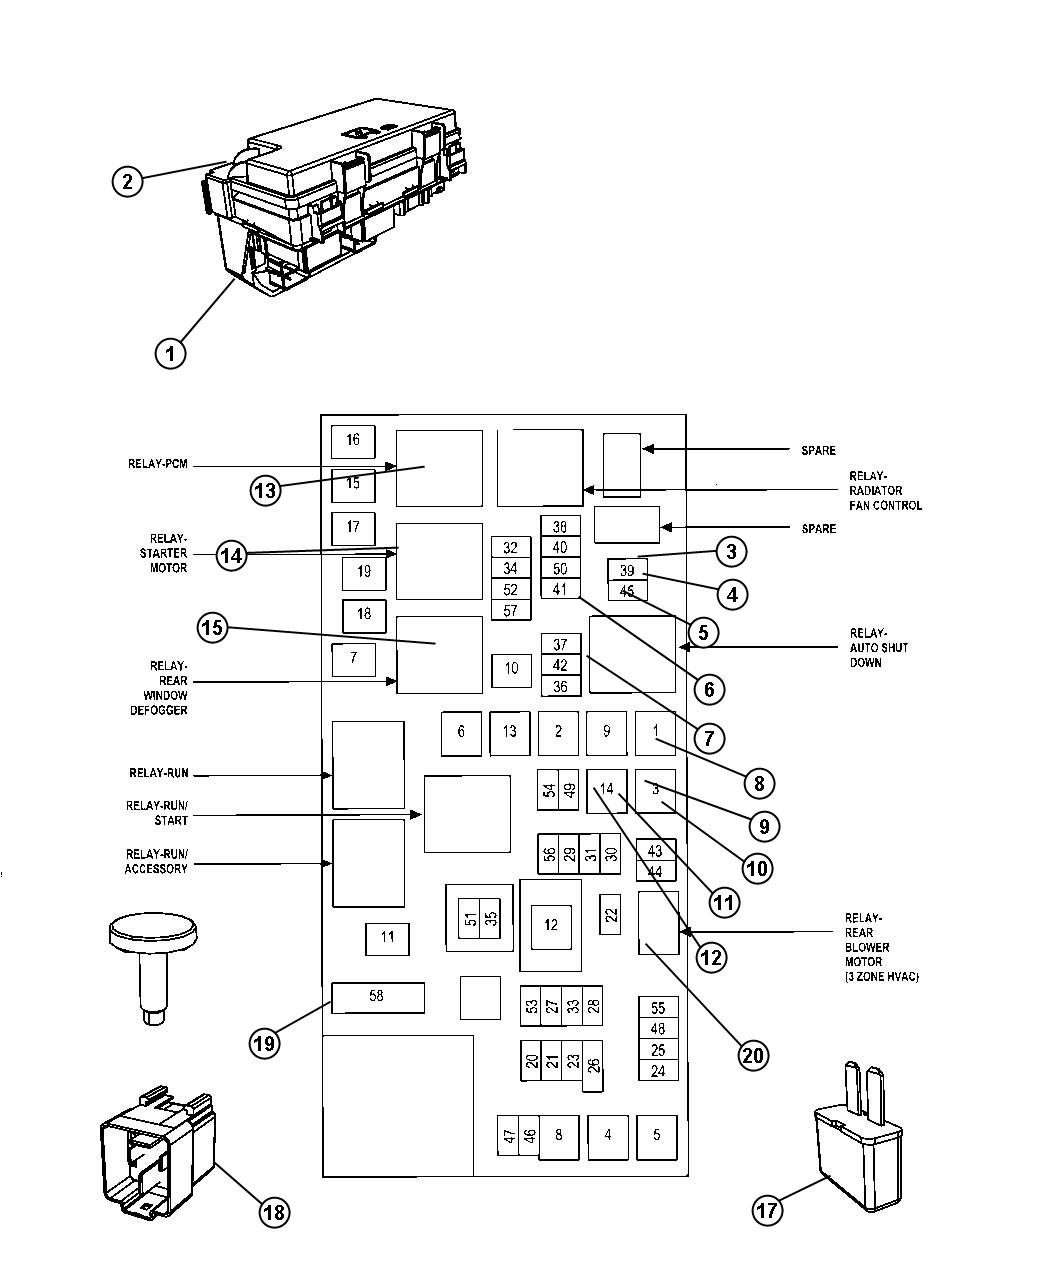 2002 Dodge Intrepid Cooling System Diagram, 2002, Free